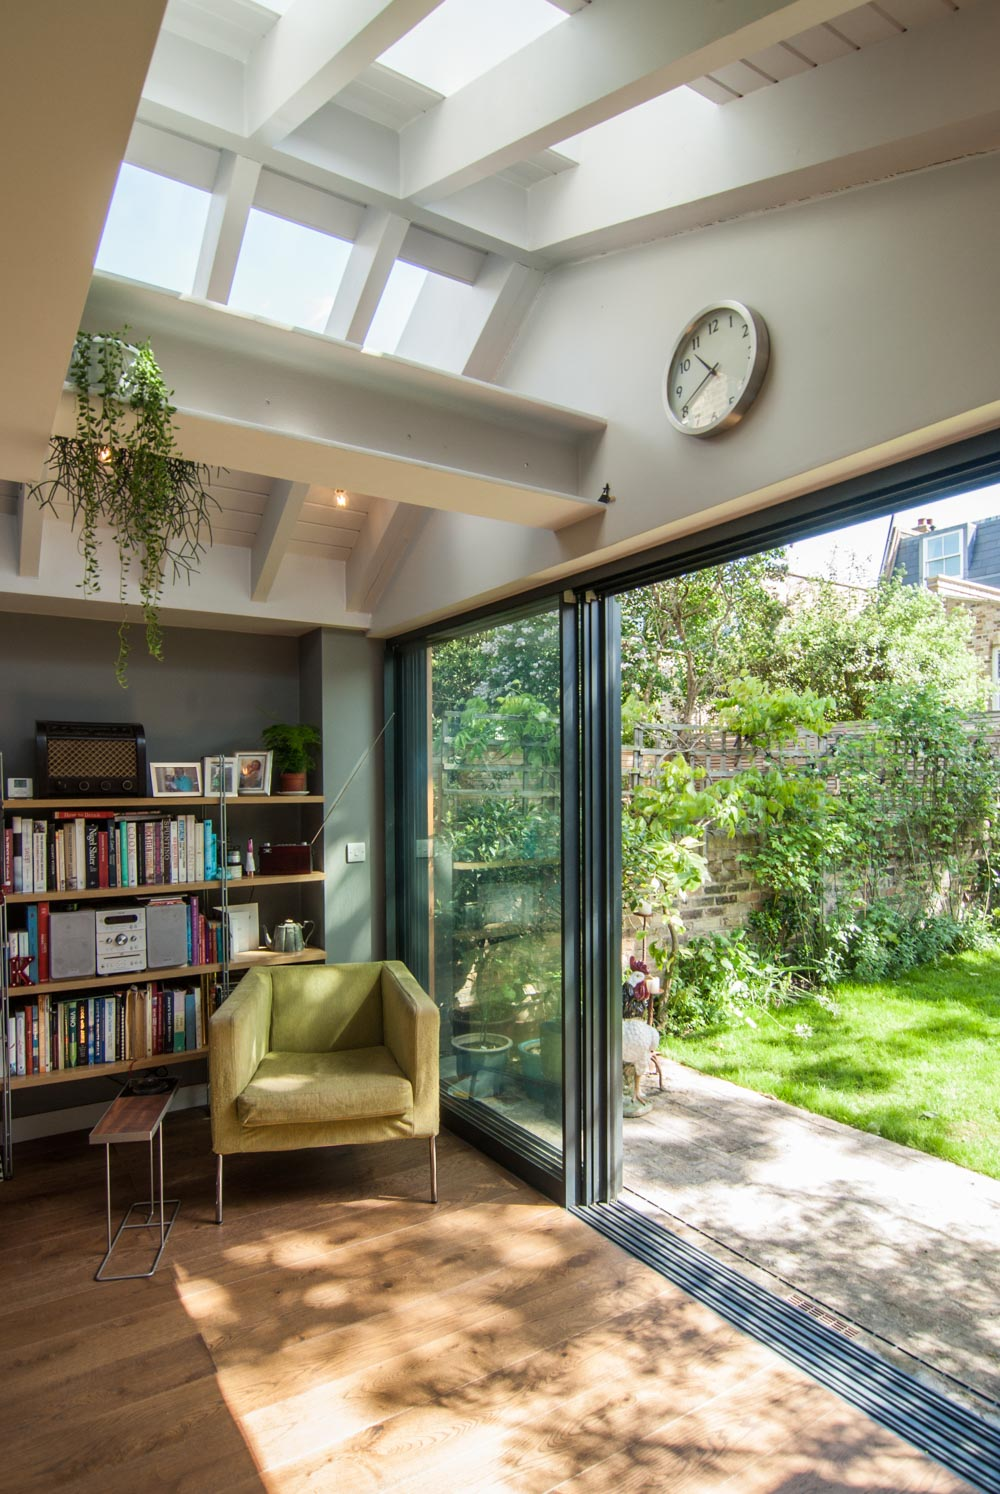 Roof lights above the exposed steel joists add drama. Seamless threshold between kitchen and garden.